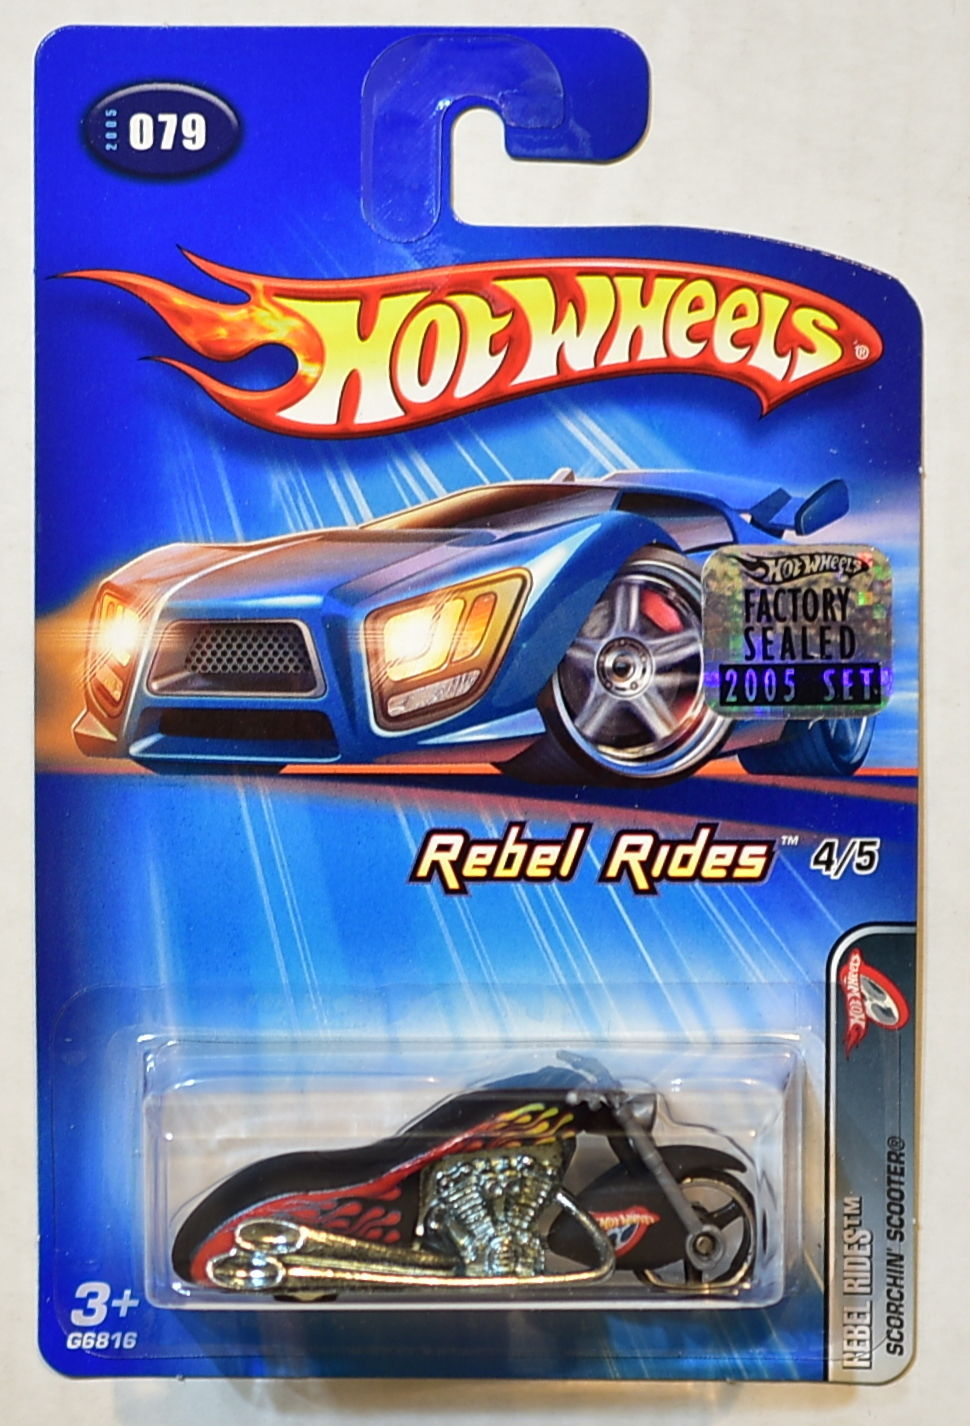 2005 Hot Wheels REBEL RIDES 4/5 SCORCHIN' SCOOTER #079 FACTORY SEALED